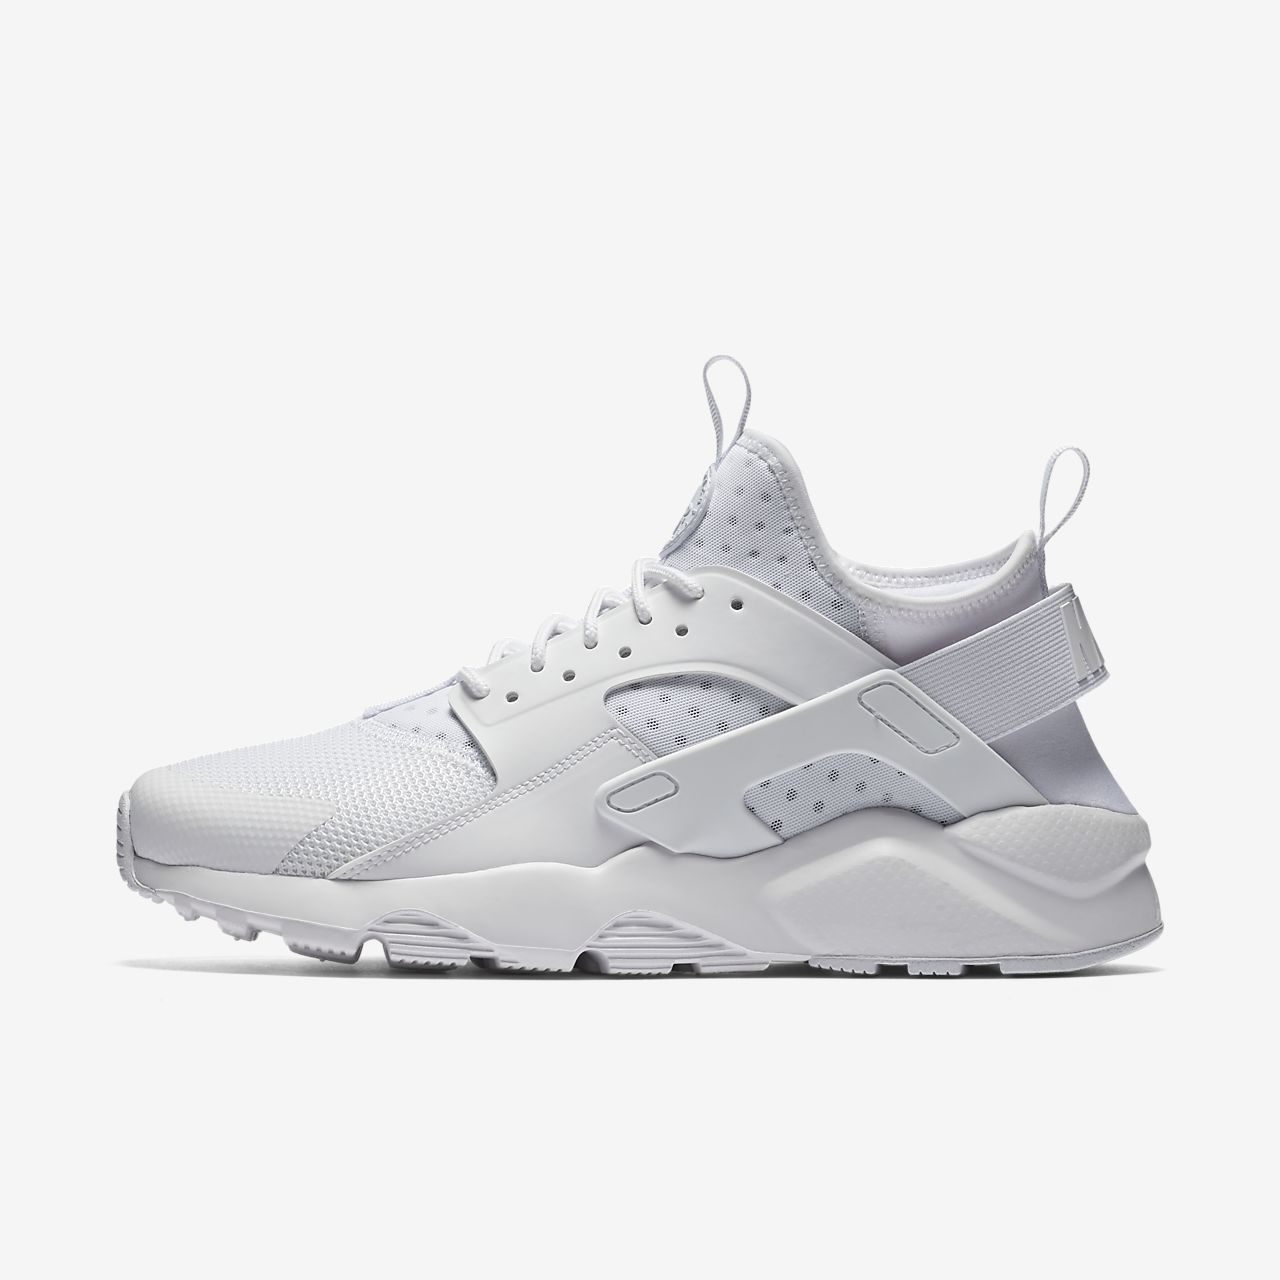 new concept ad1c6 fd757 ... Nike Air Huarache Ultra Mens Shoe